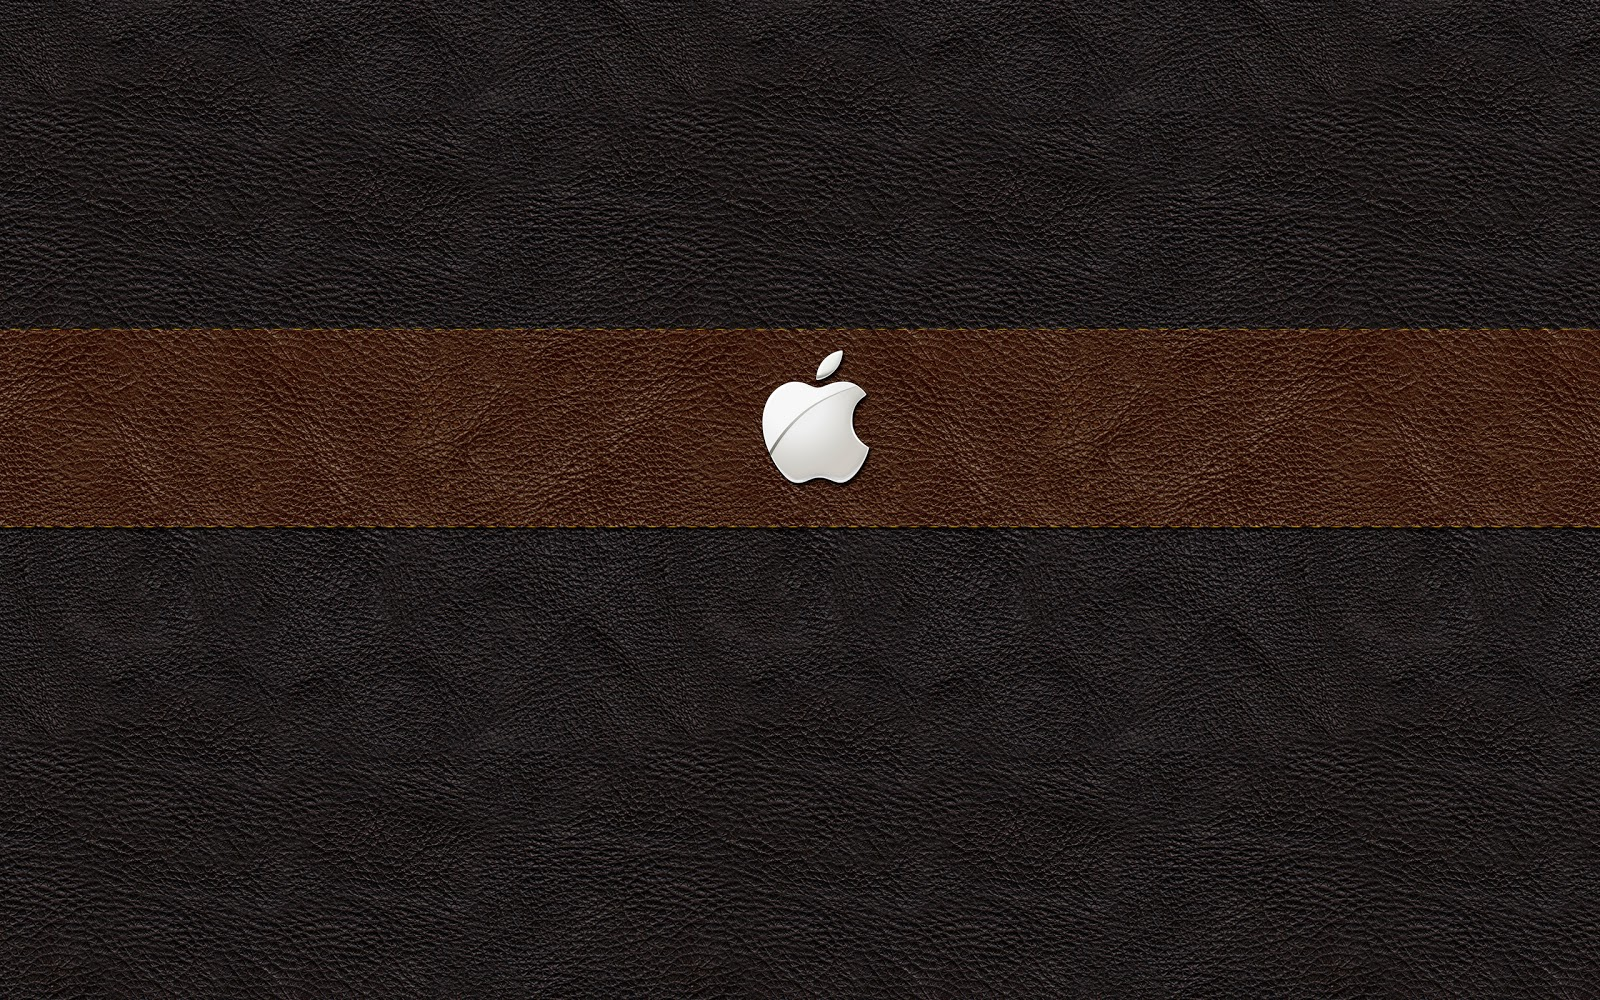 http://2.bp.blogspot.com/-zim9tZ4ST5Y/T7Jg96cClyI/AAAAAAAARoo/hA-X03k96M8/s1600/Leather-Apple-2560x1600.jpg